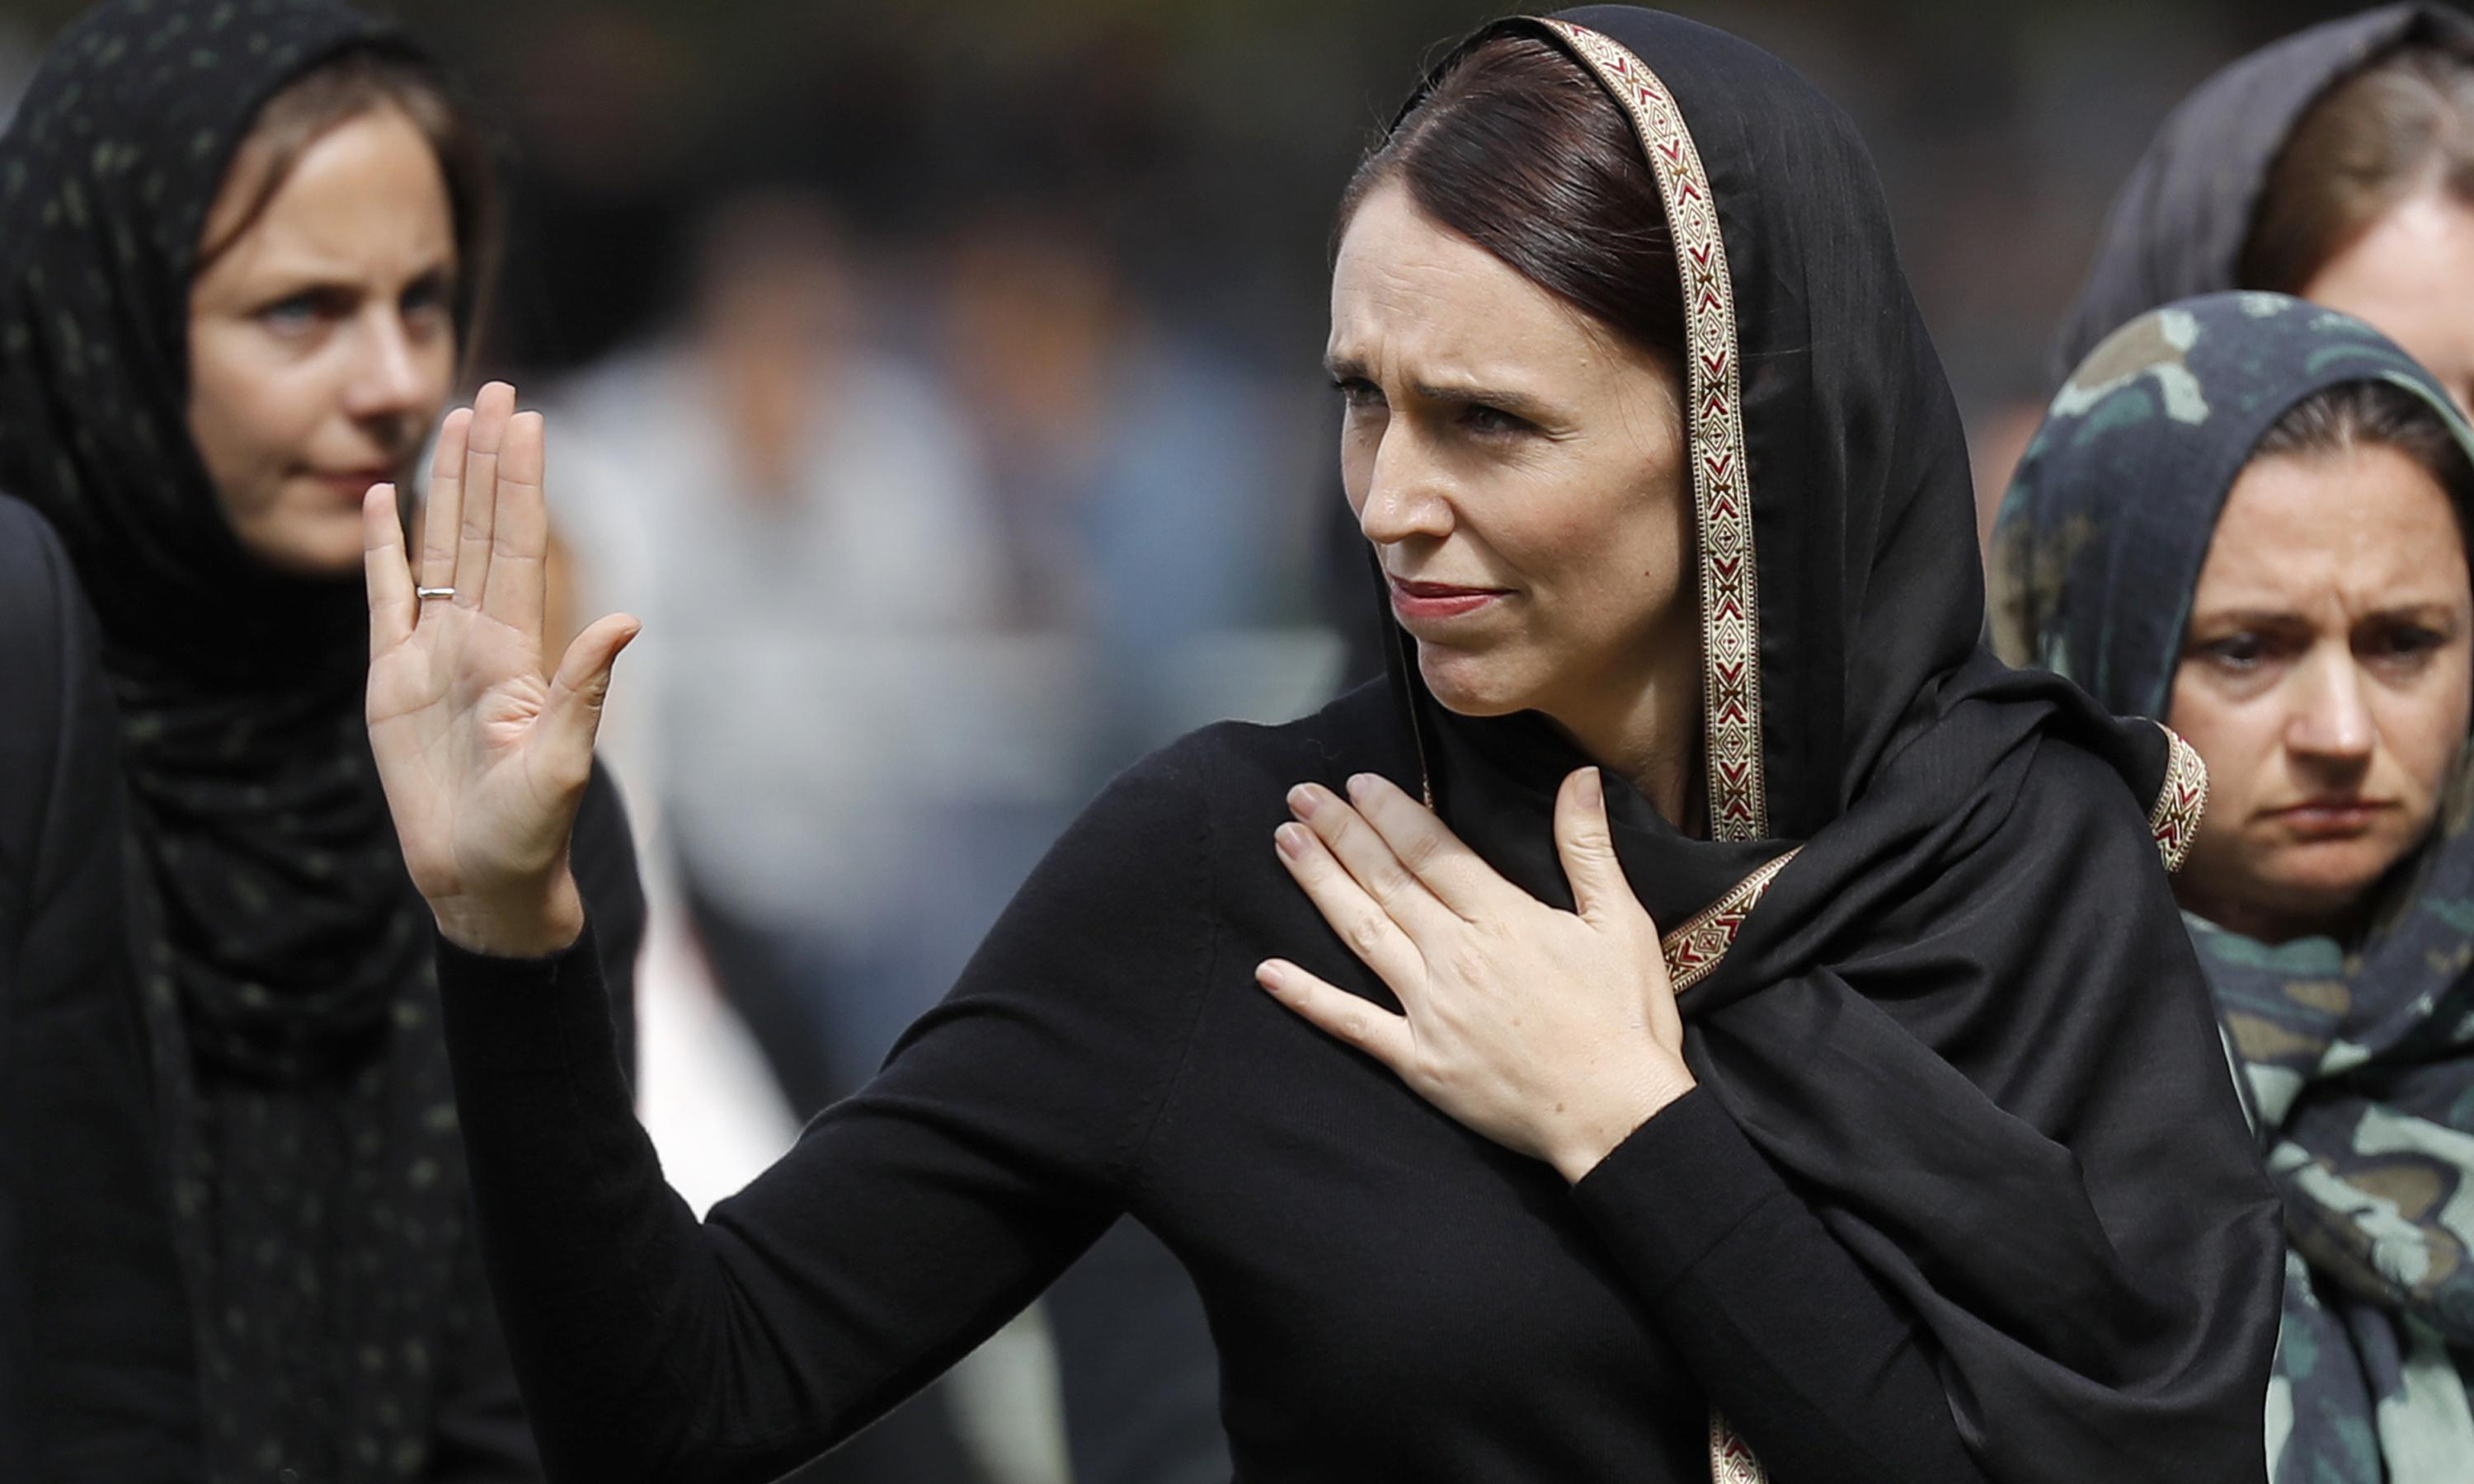 Christchurch attack: New Zealand tries new tactic to disrupt online extremism